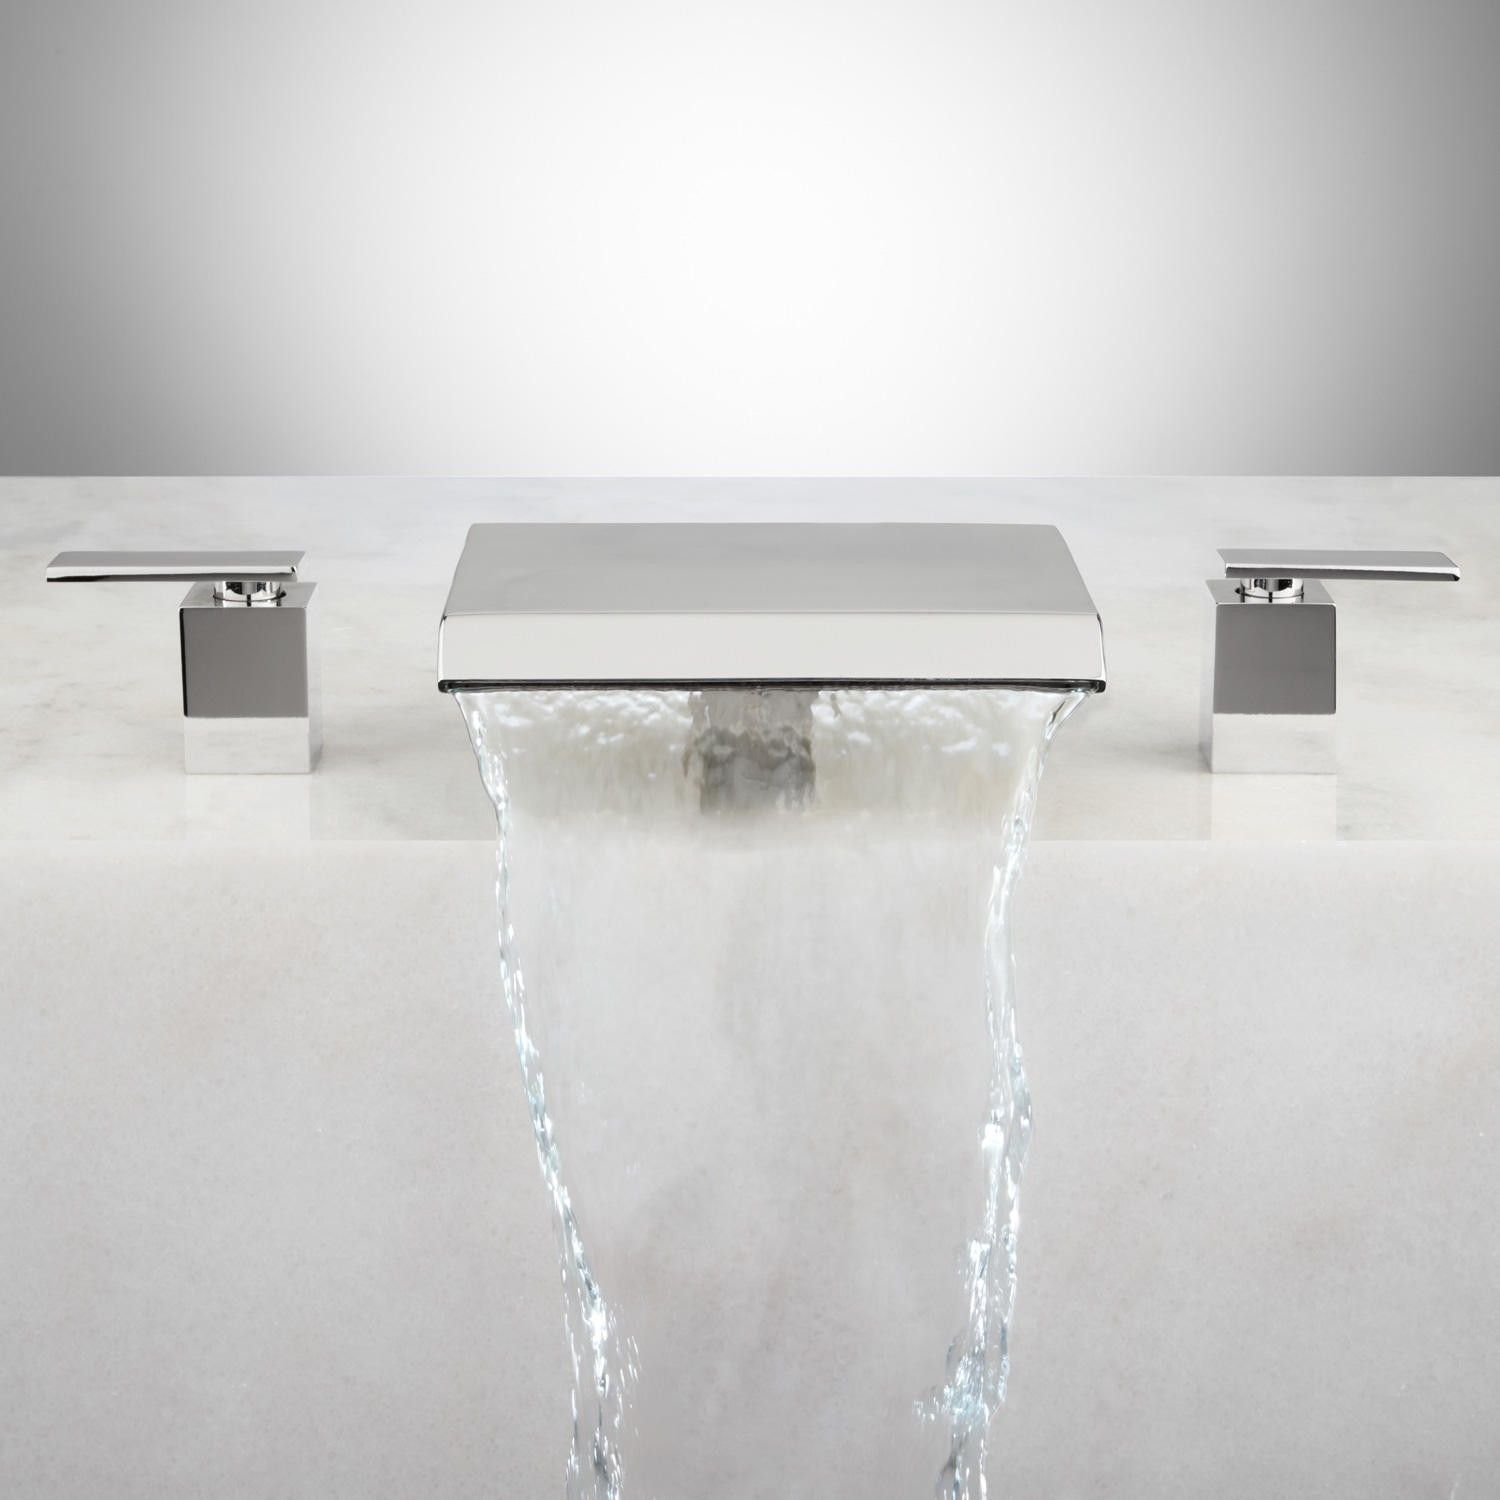 Lavelle Waterfall Roman Tub Faucet | Faucet, Tubs and Roman